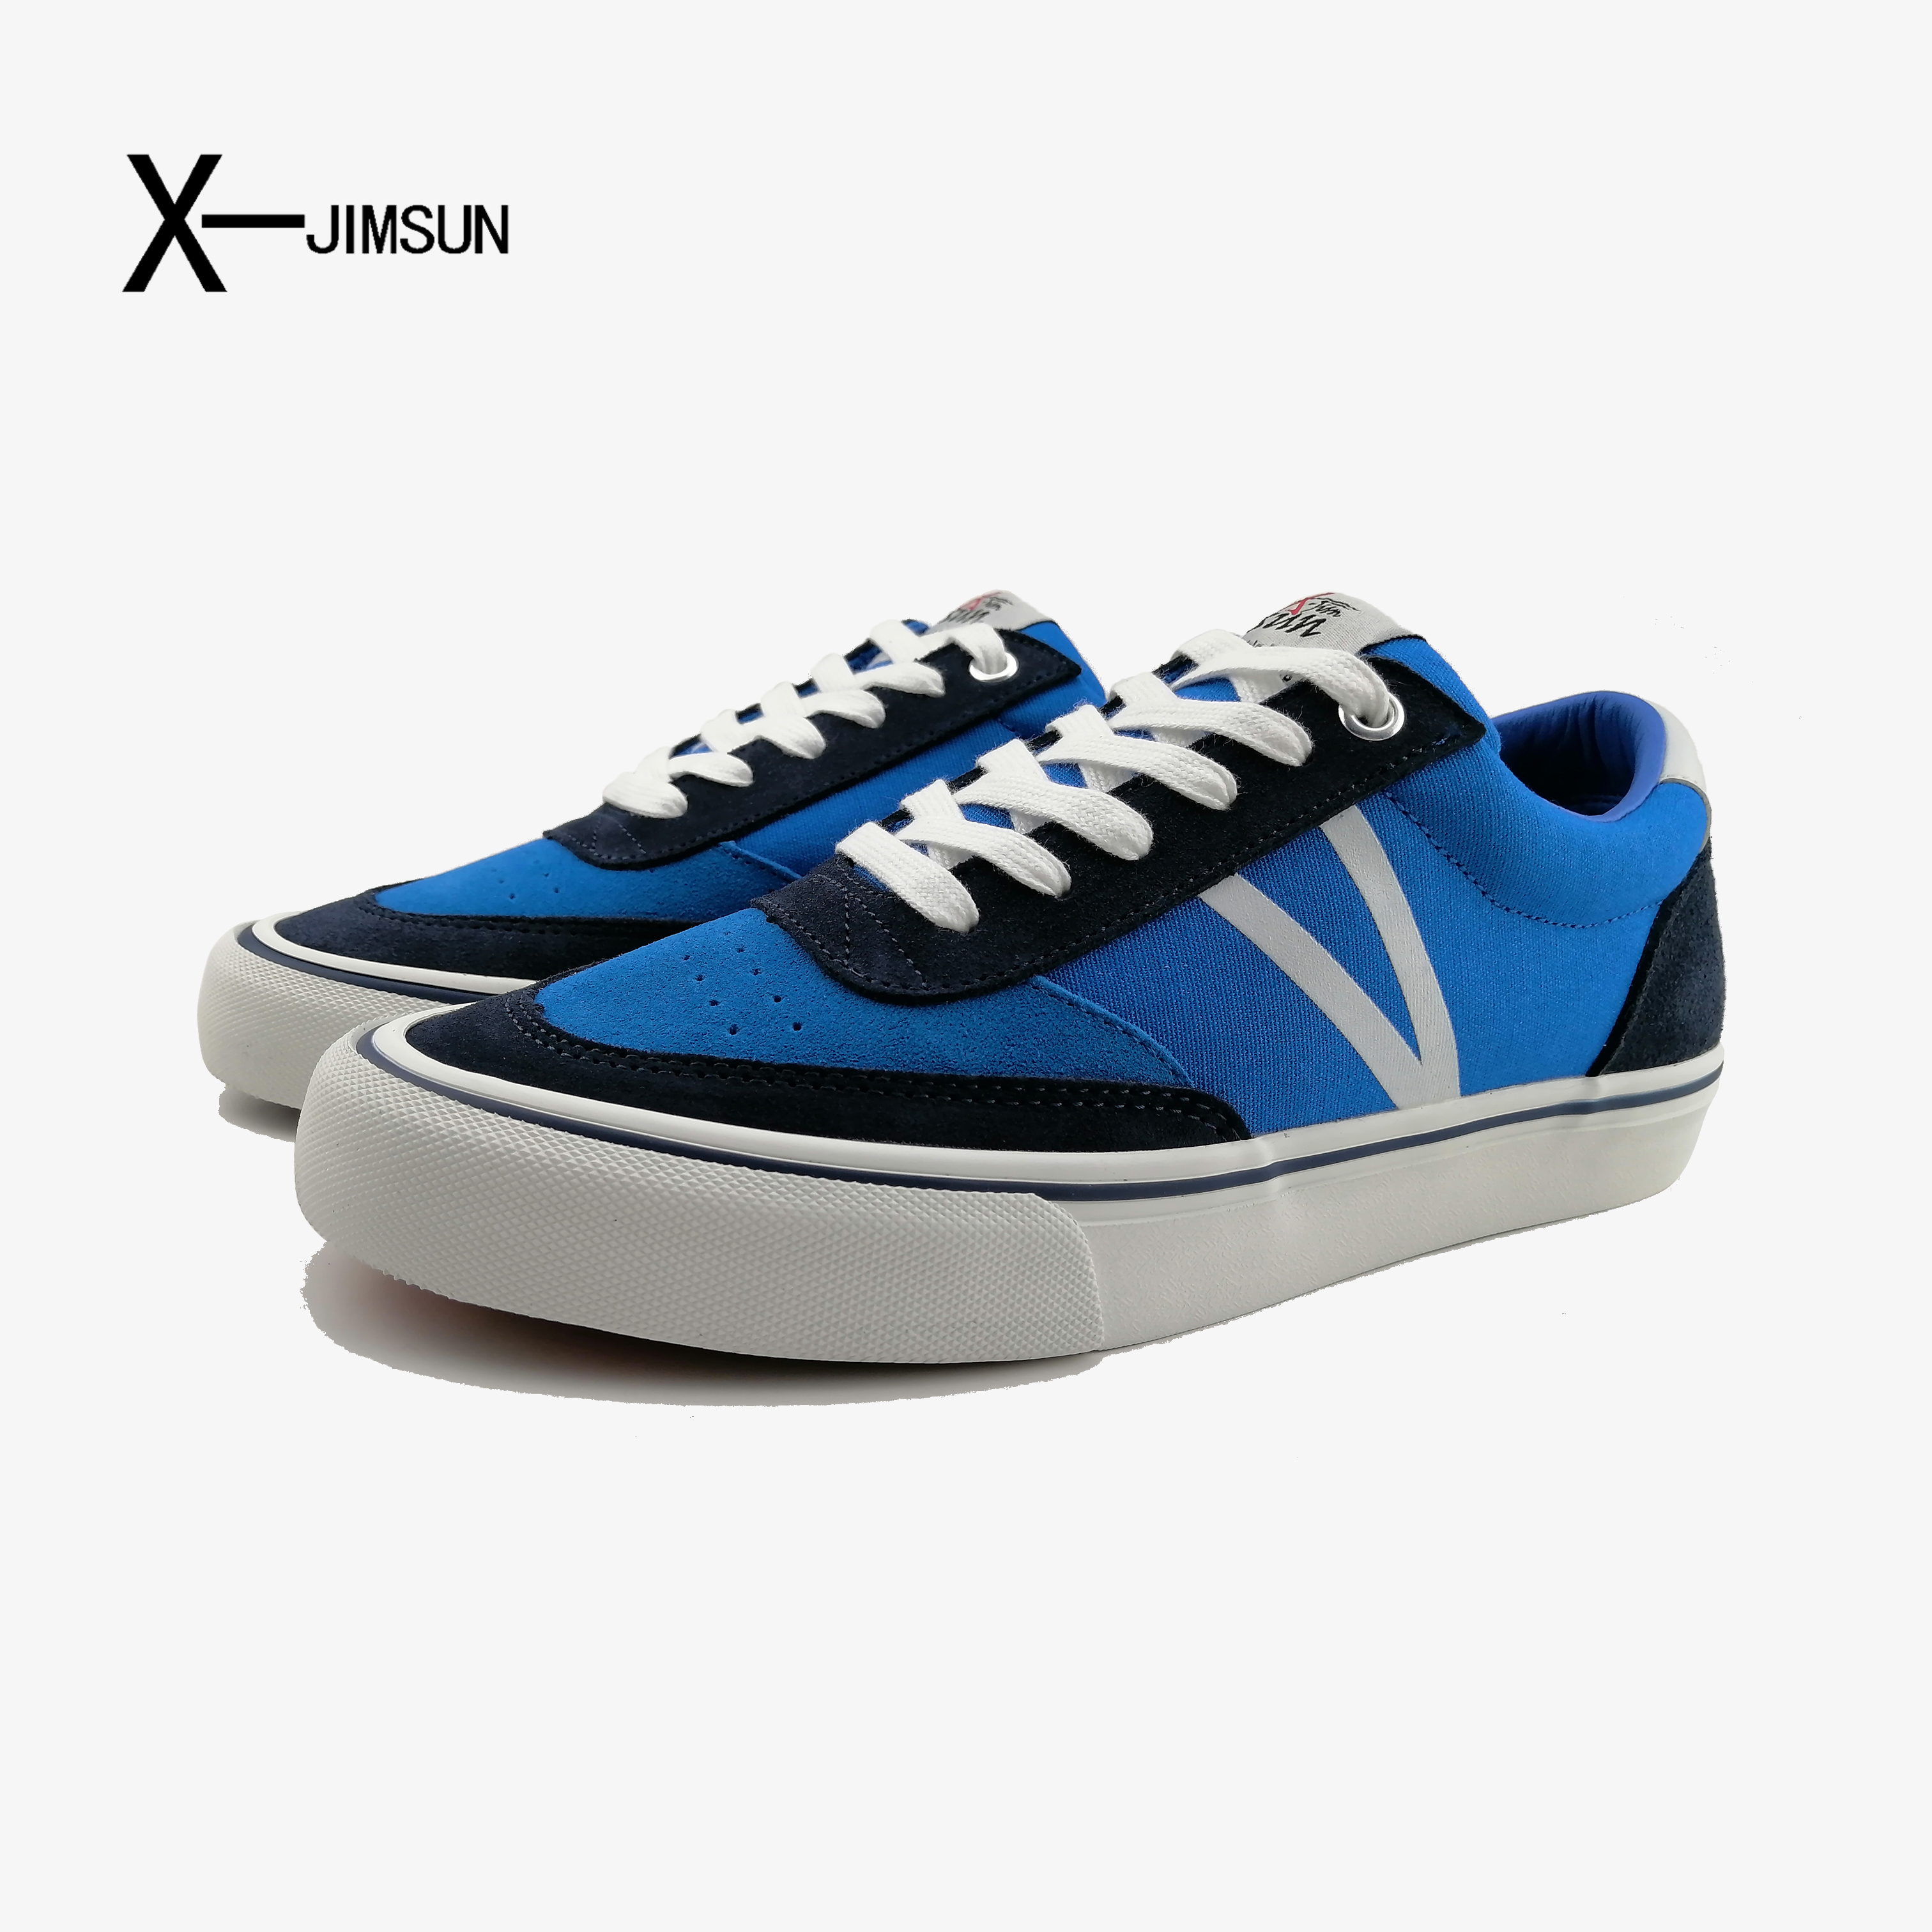 X-jimsun original brand design trend casual shoes men's new summer sports shoes low top breathable skateboard shoes